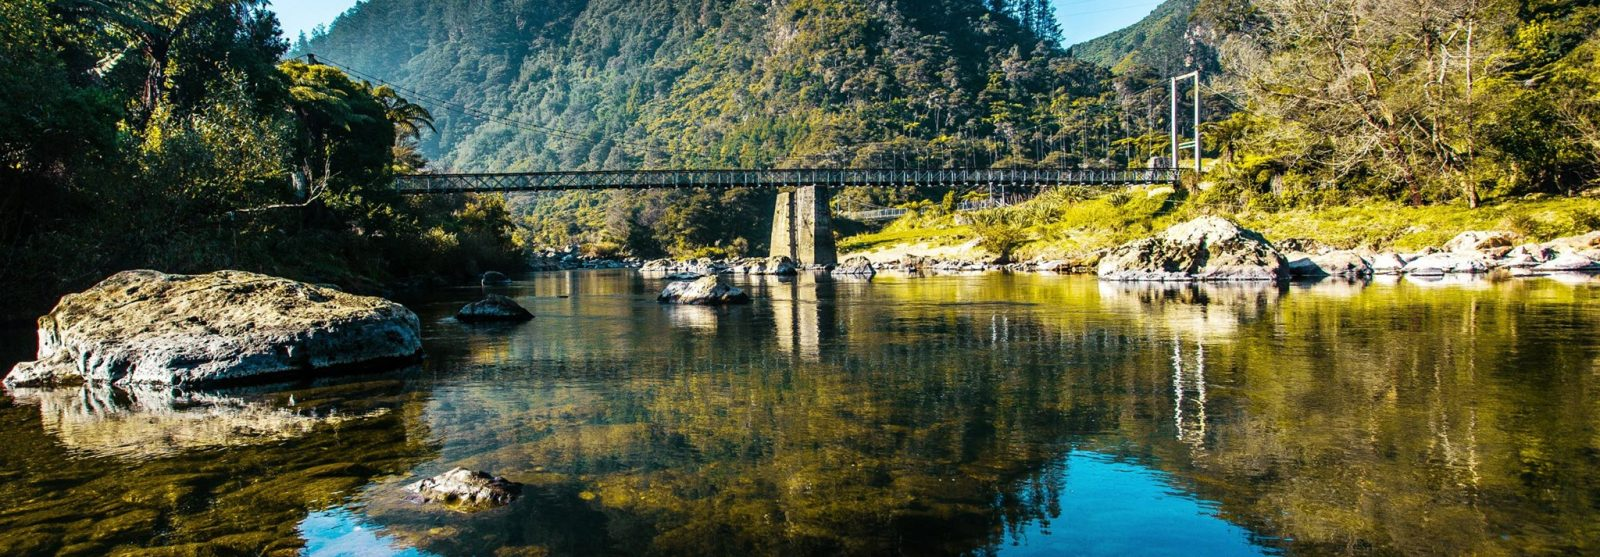 karangahake-gorge-reflections